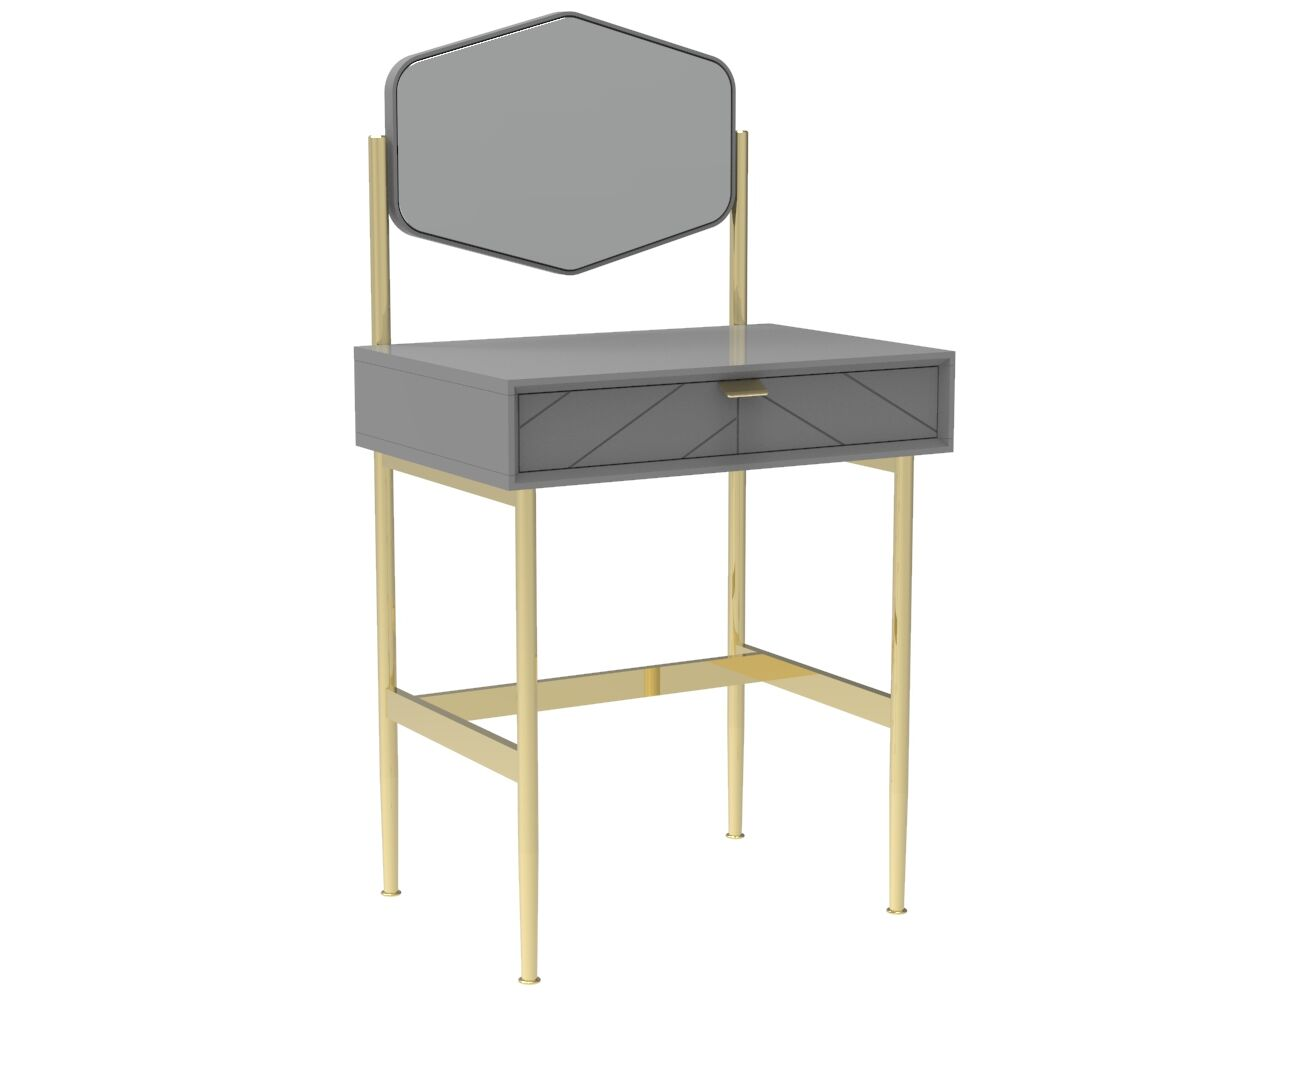 Chevron-patterned Adele Compact Dresser in Mist Grey and Brass